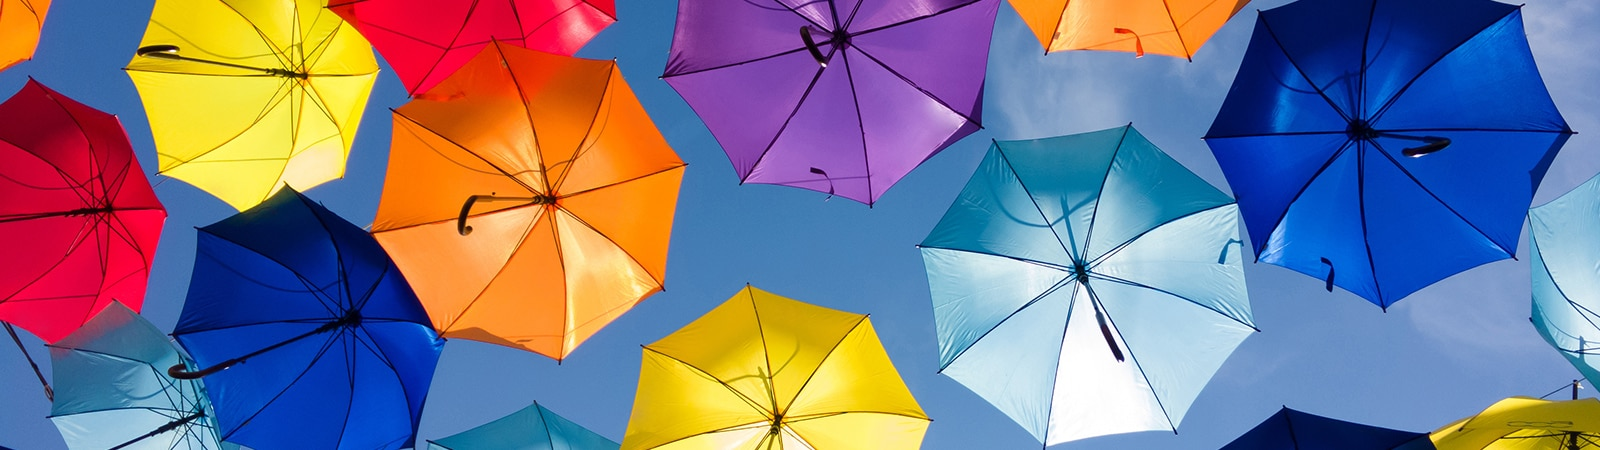 Illustrative image of colourful umbrellas representative of the cover provided by Sony Professional Solutions Europe standard product warranty